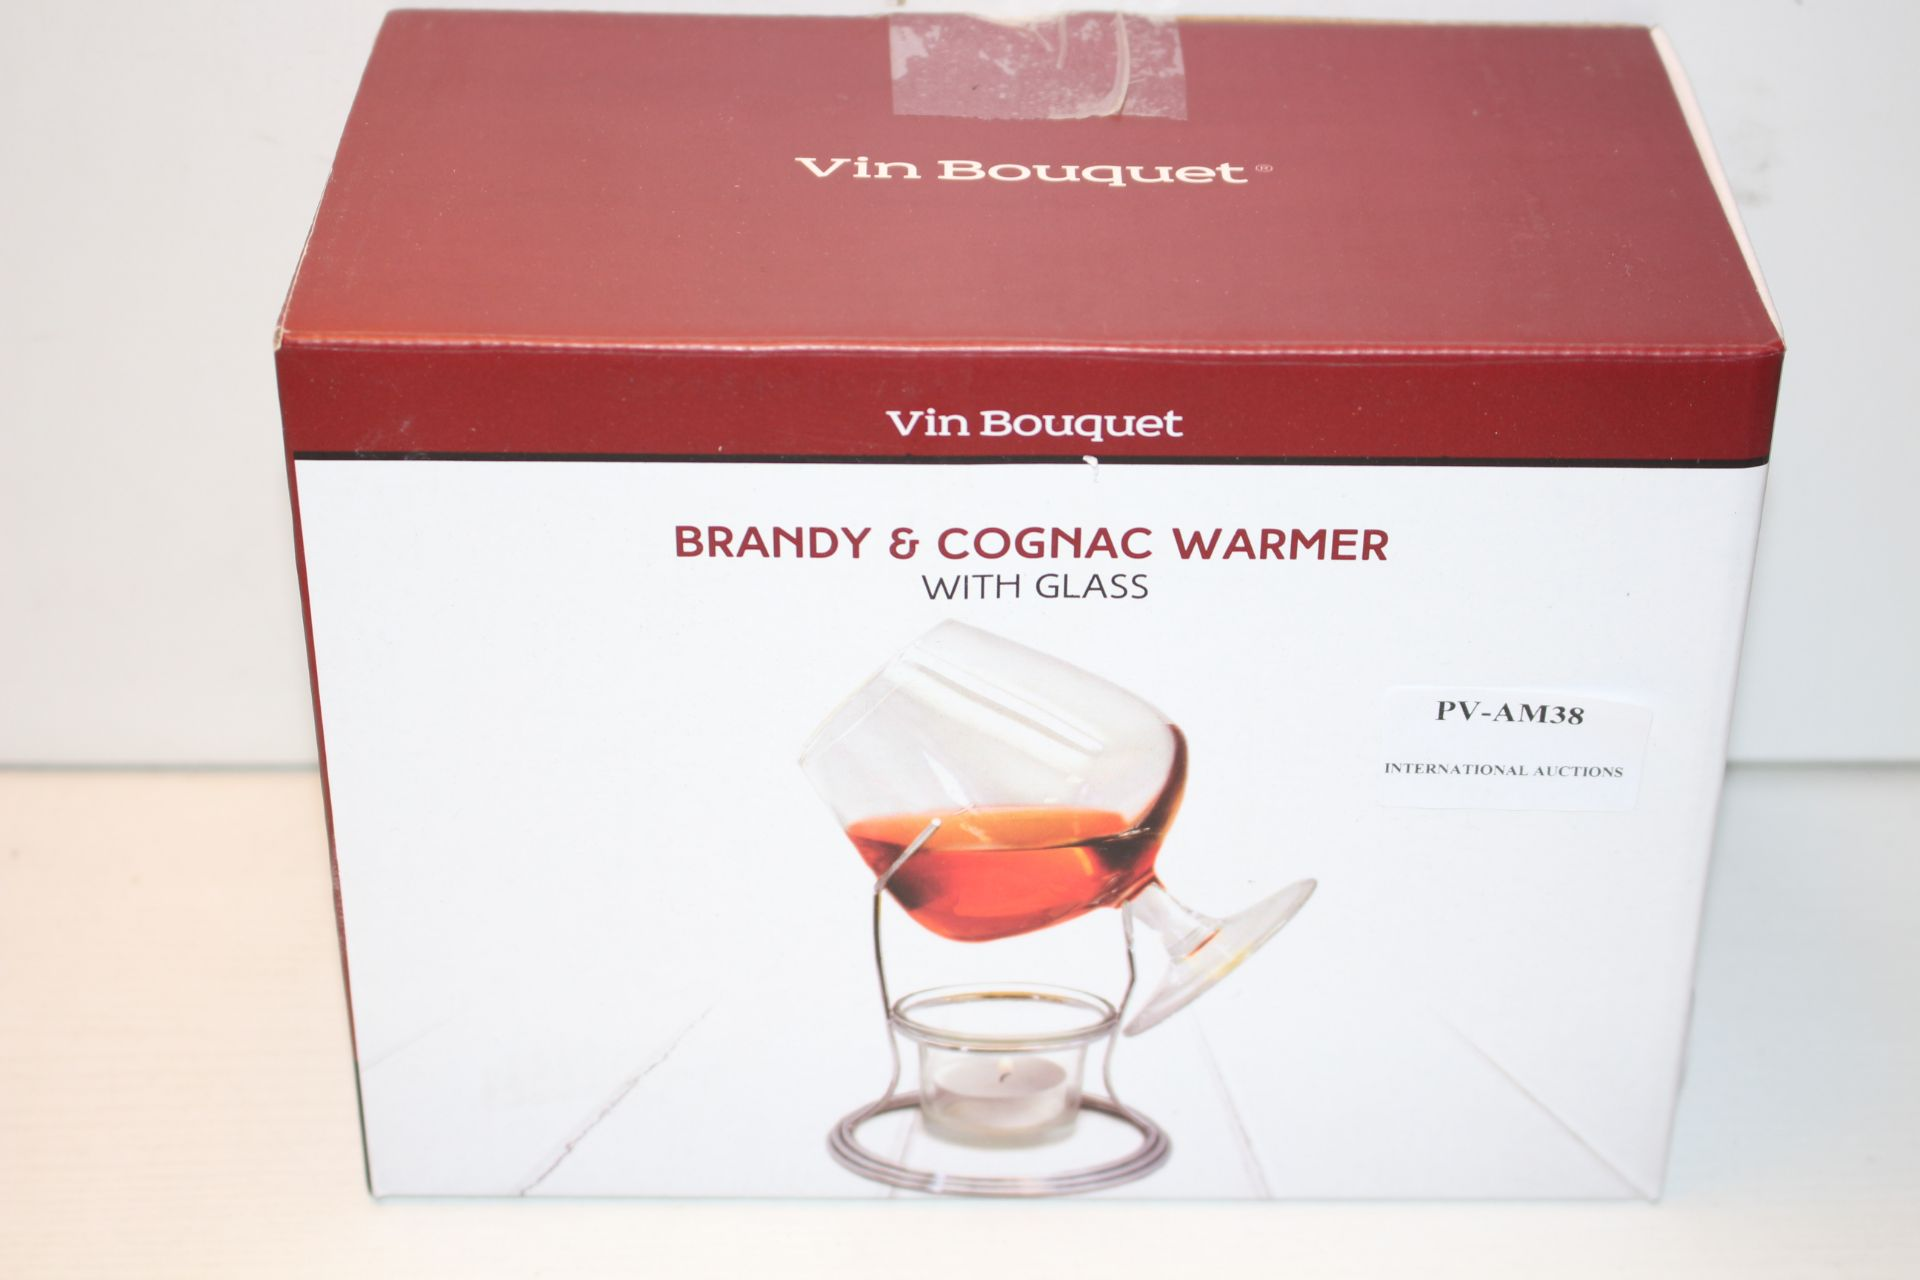 BOXED VIN BOUQUET BRANDY & COGNAC WARMER WITH GLASSCondition ReportAppraisal Available on Request-